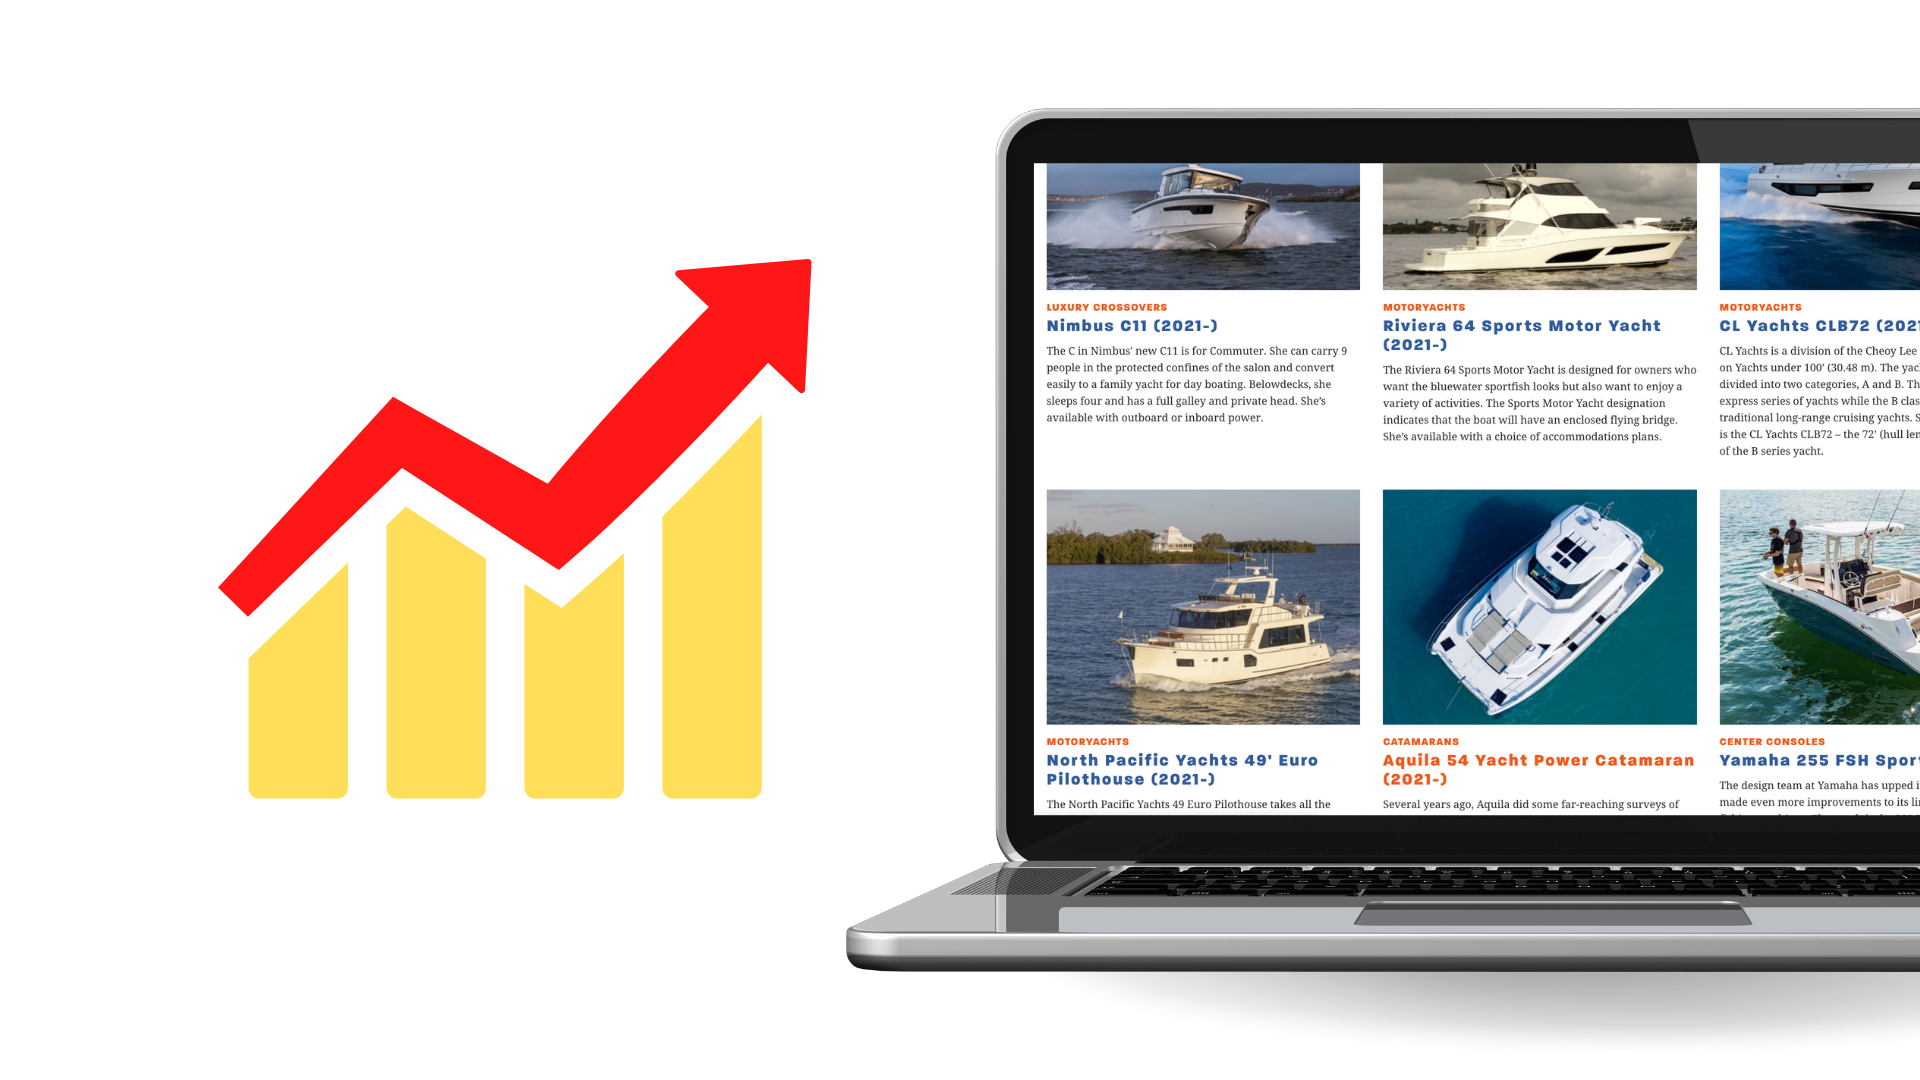 BoatTEST review